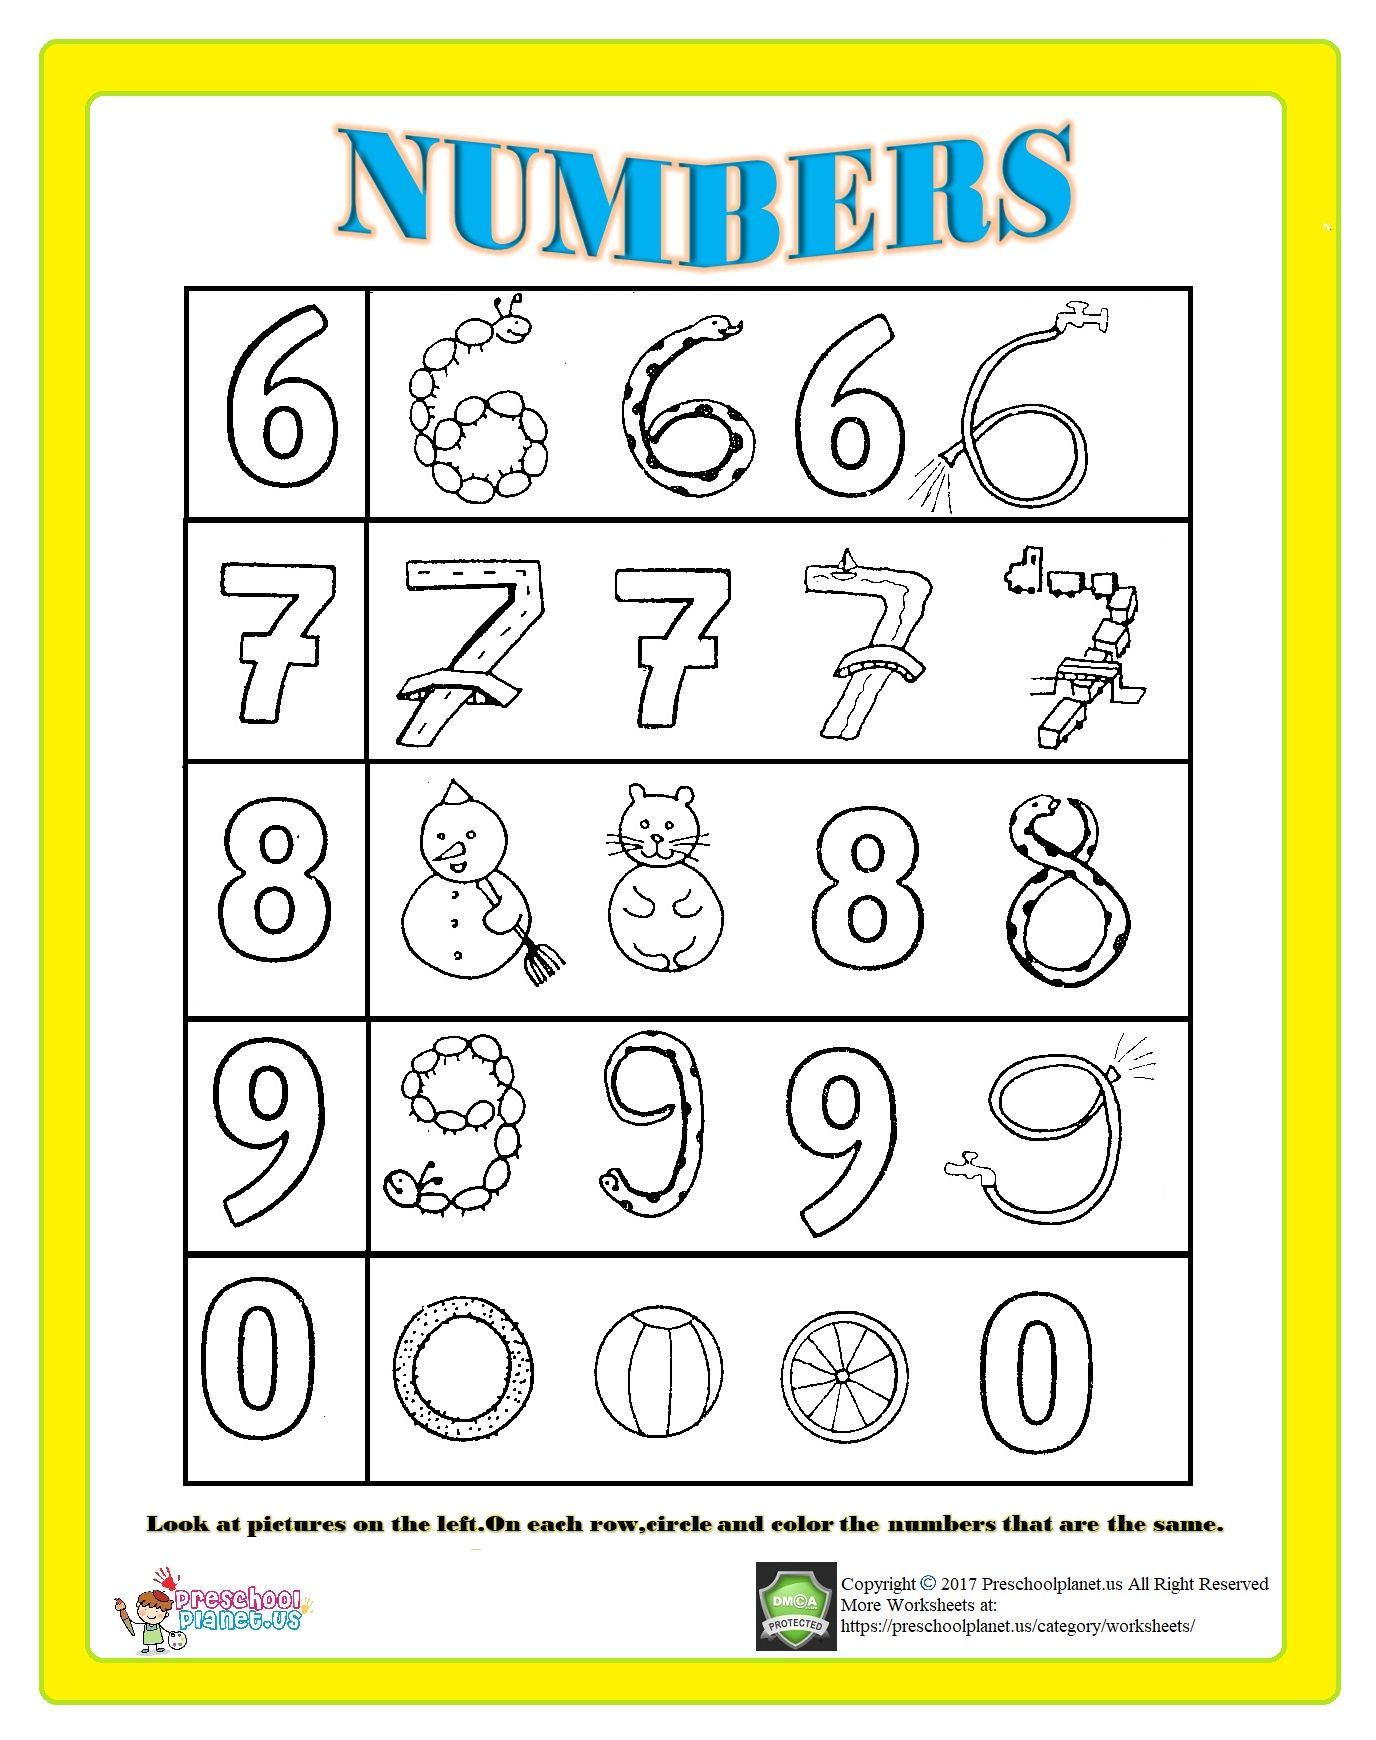 Number Worksheet For Kids